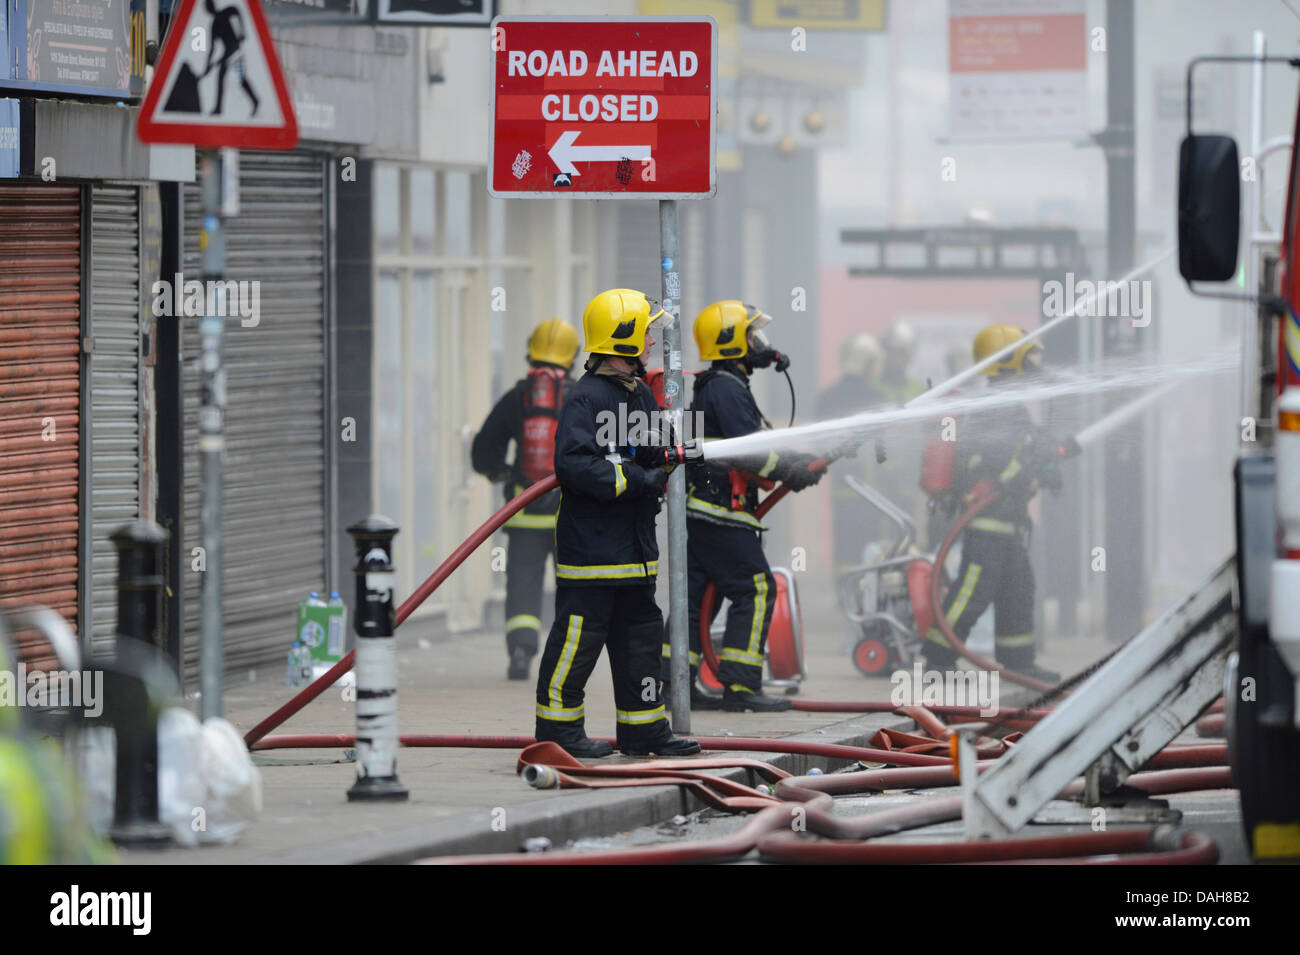 Manchester, UK. 13th July, 2013. Firefighters tackle a blaze at Paul's Hair World and NQ Life music venue on - Stock Image